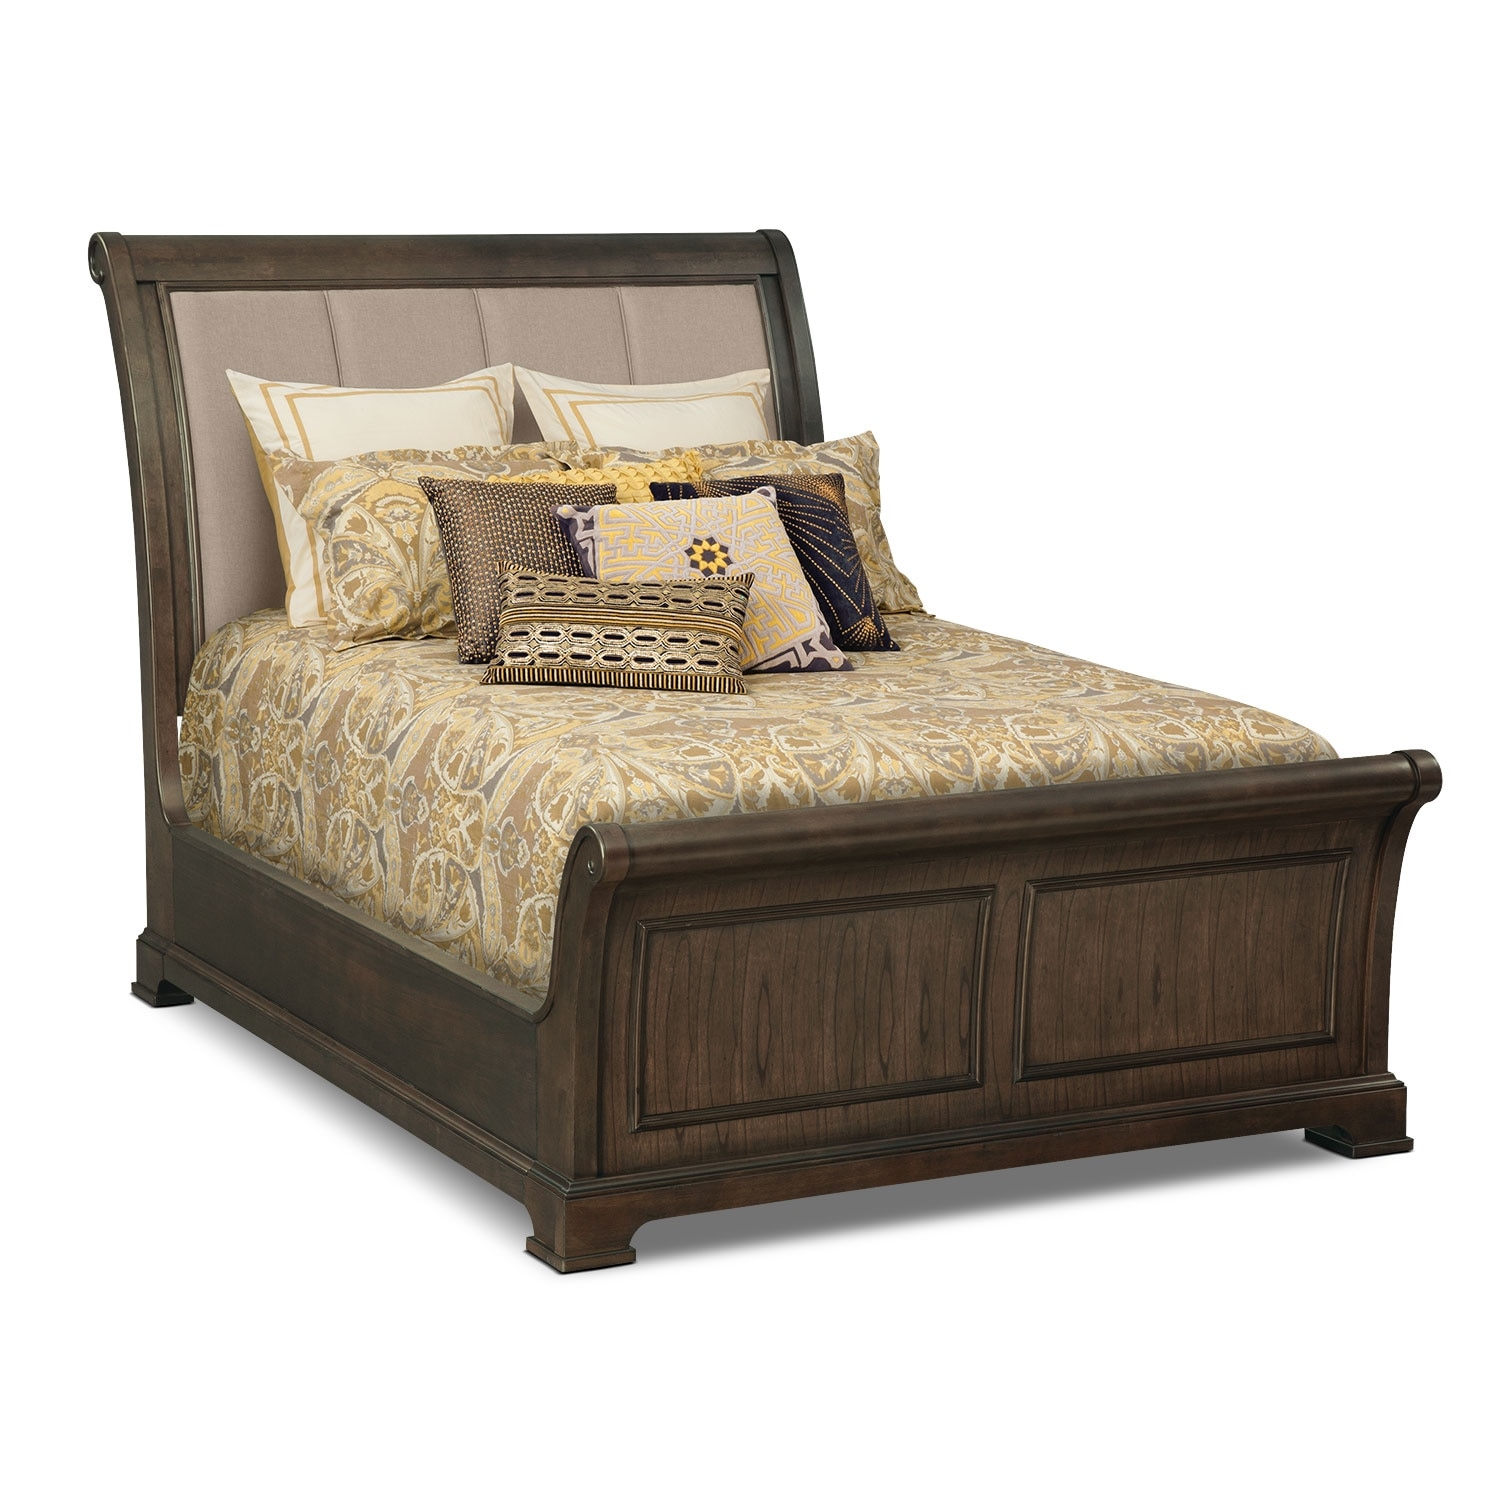 Bedroom Furniture - Collinwood Queen Sleigh Bed